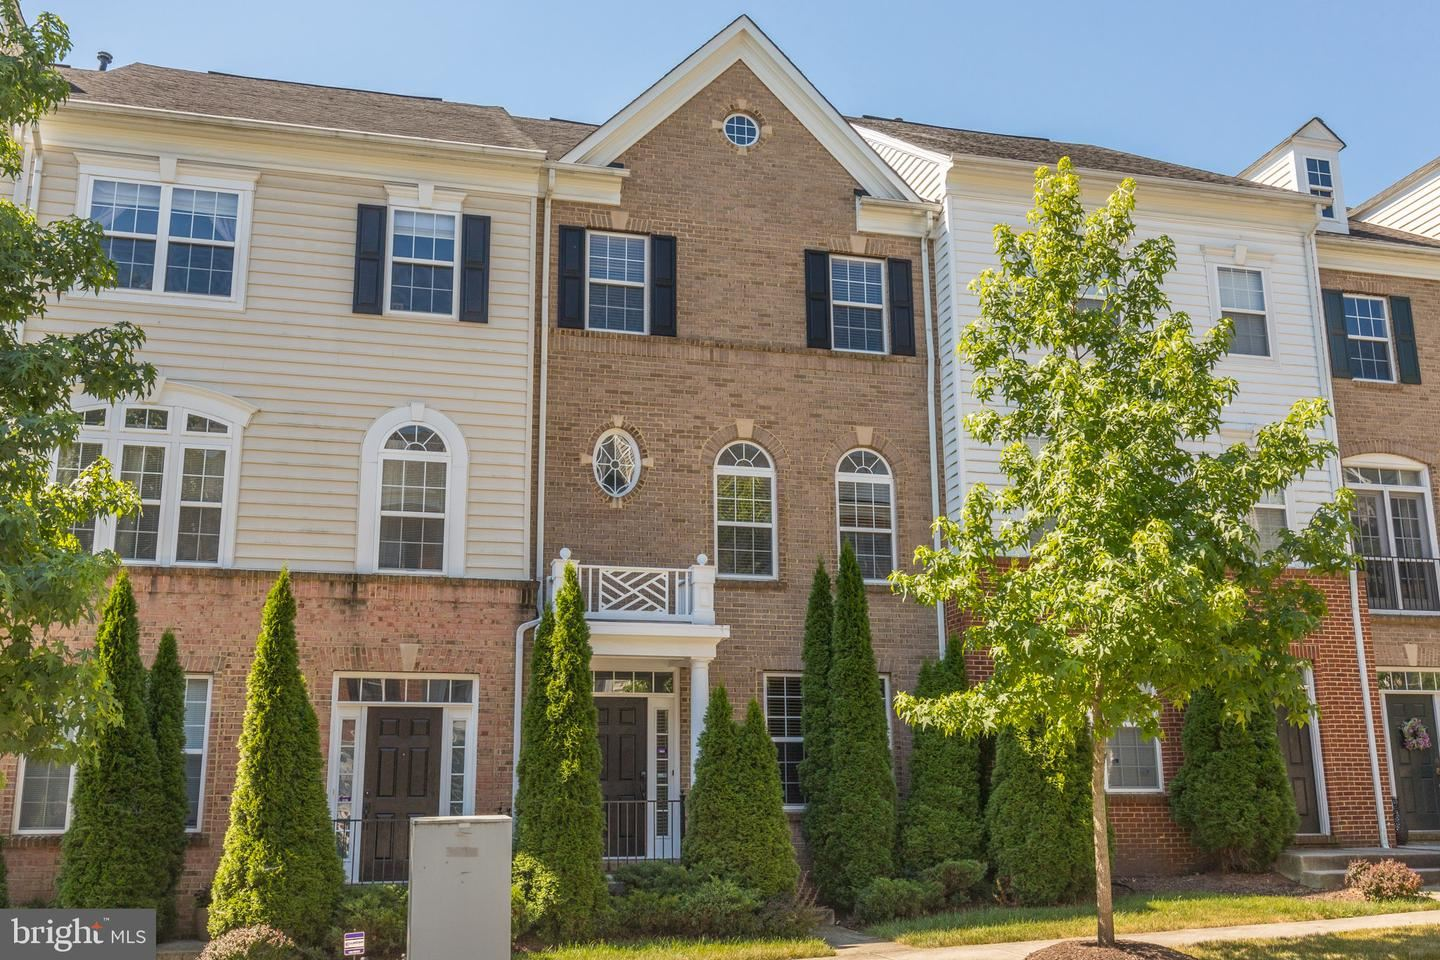 Photo for 8005 ENDZONE WAY, LANDOVER, MD 20785 (MLS # MDPG602424)